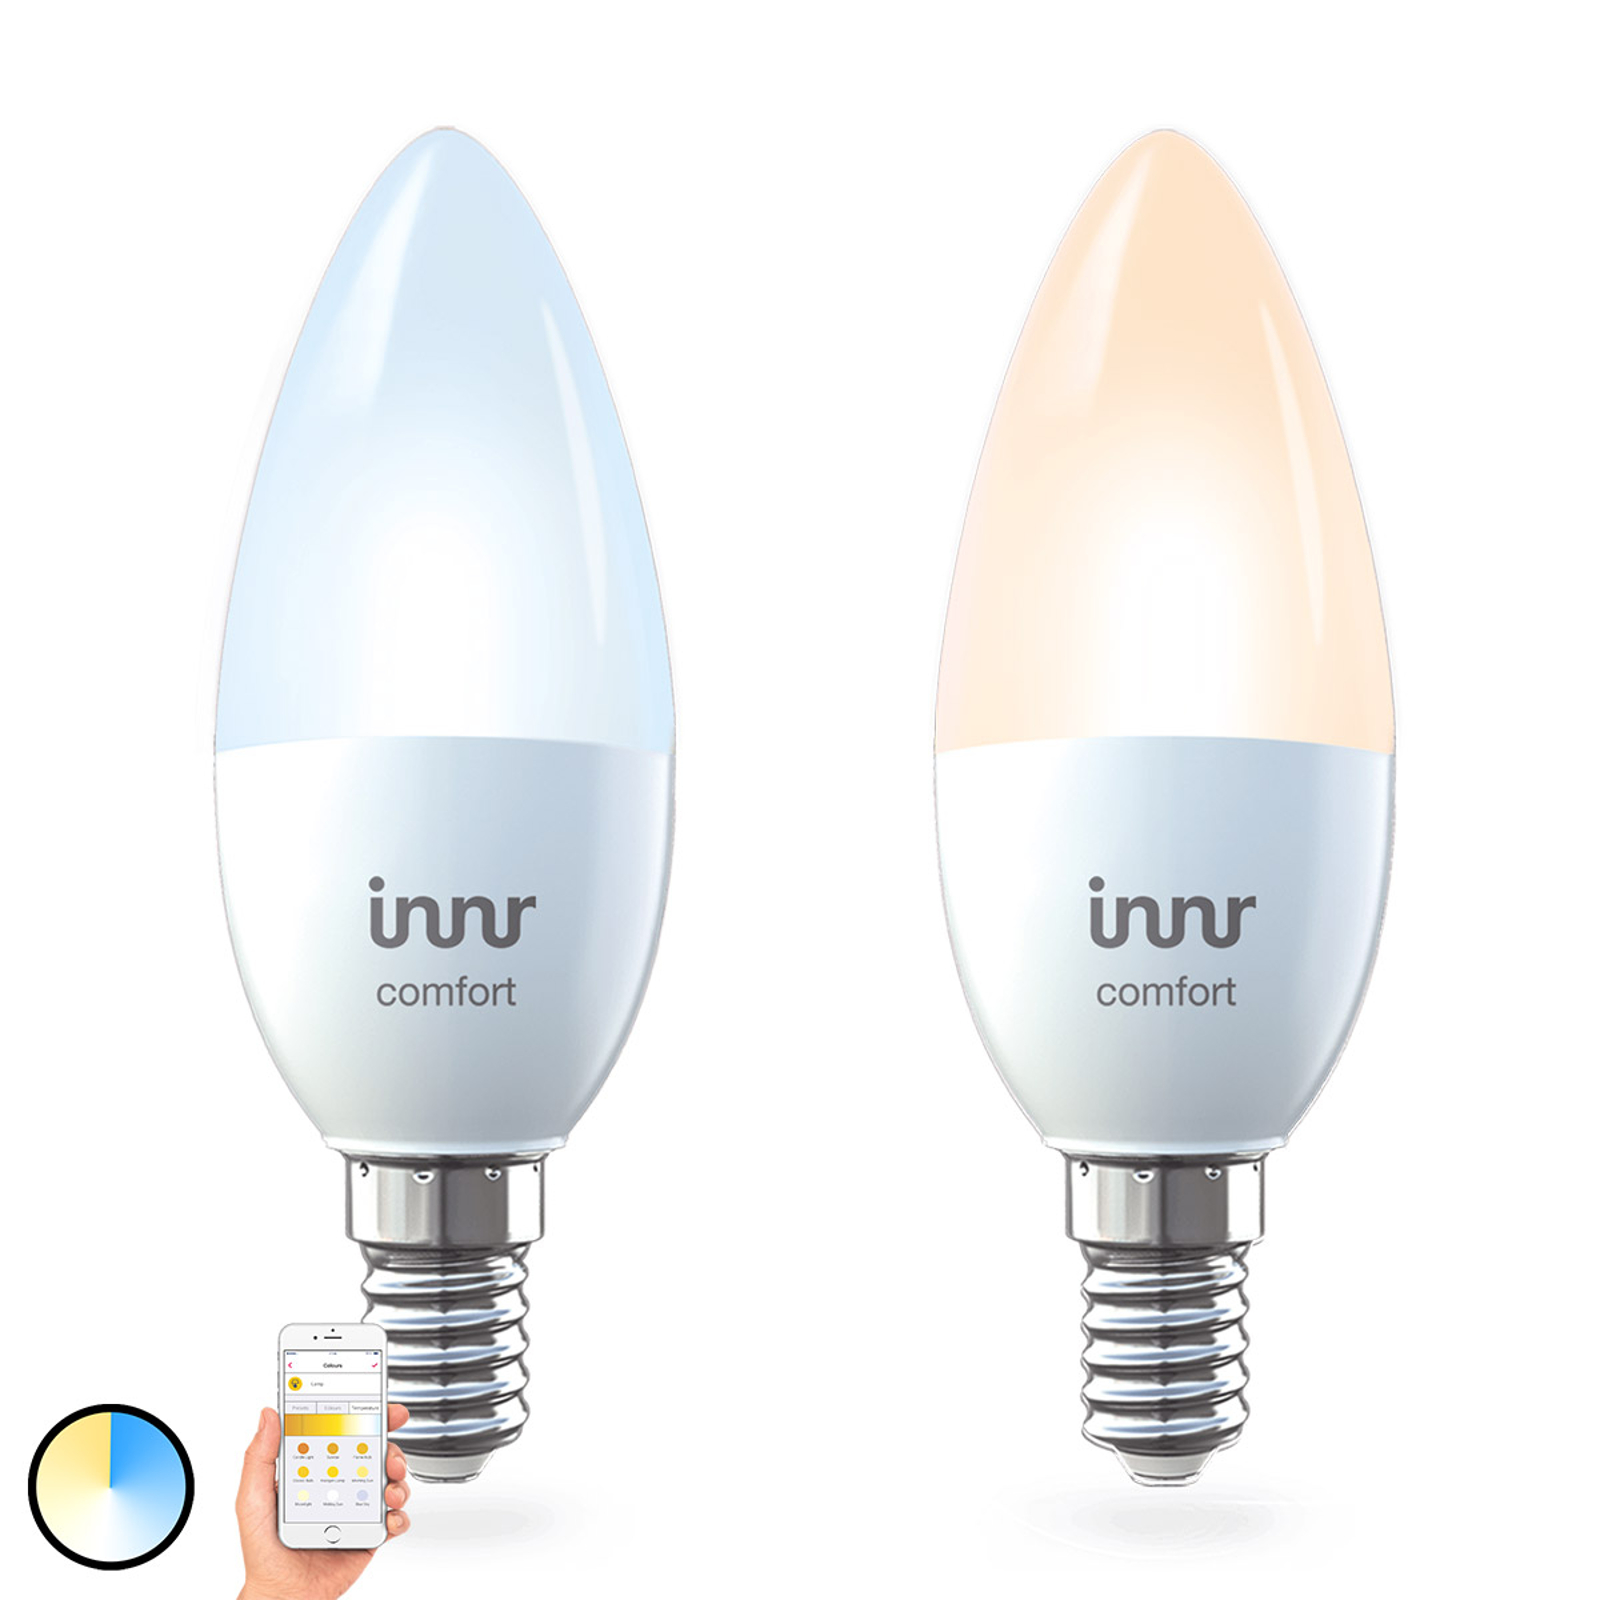 2 ampoules LED E14 5,8 W Innr Smart Candle Comfort